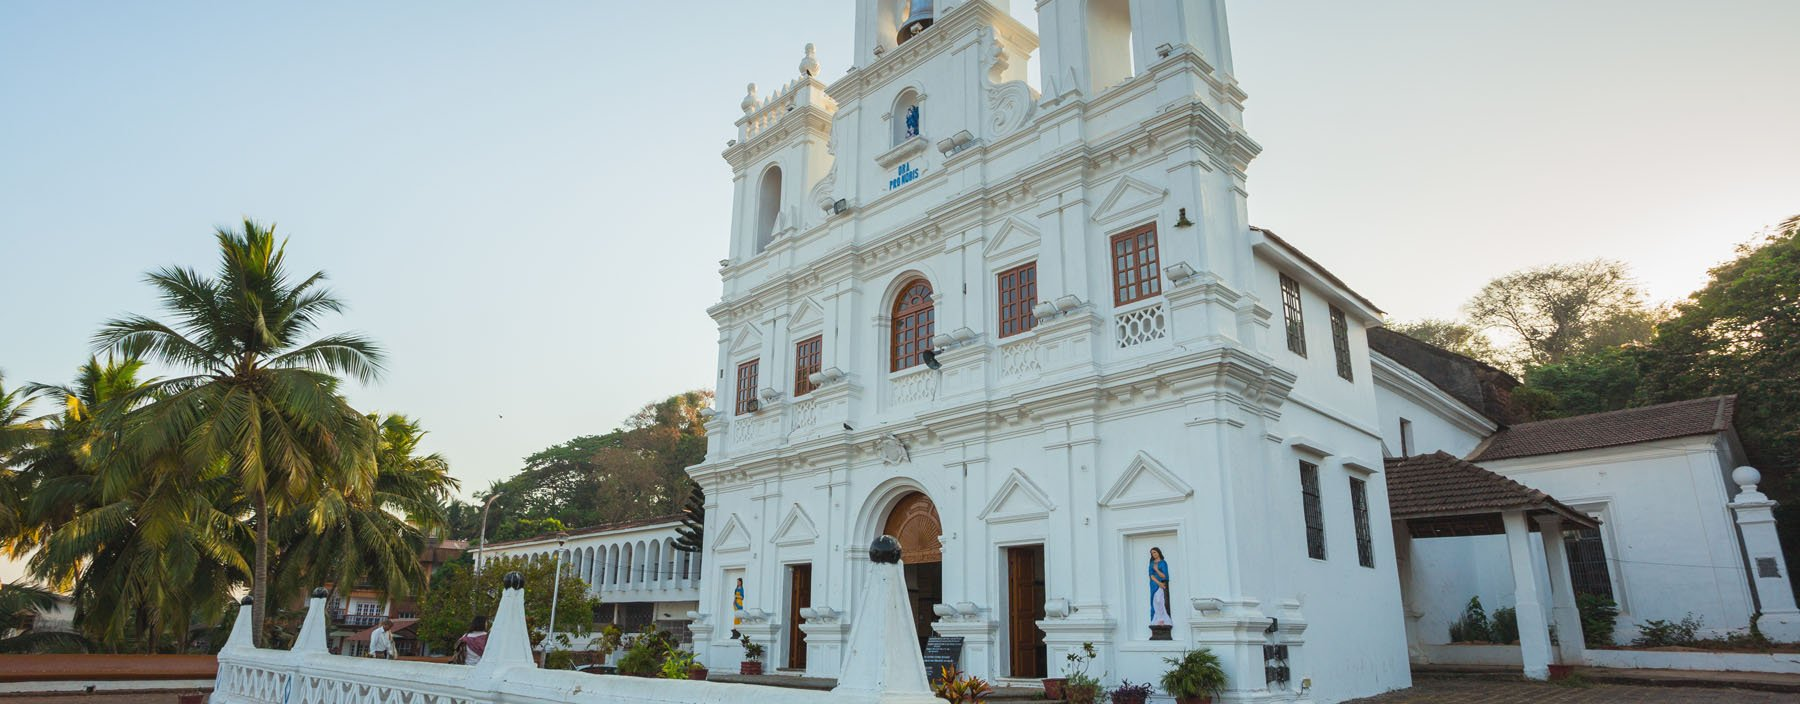 in, goa, panjim, kerk.jpg